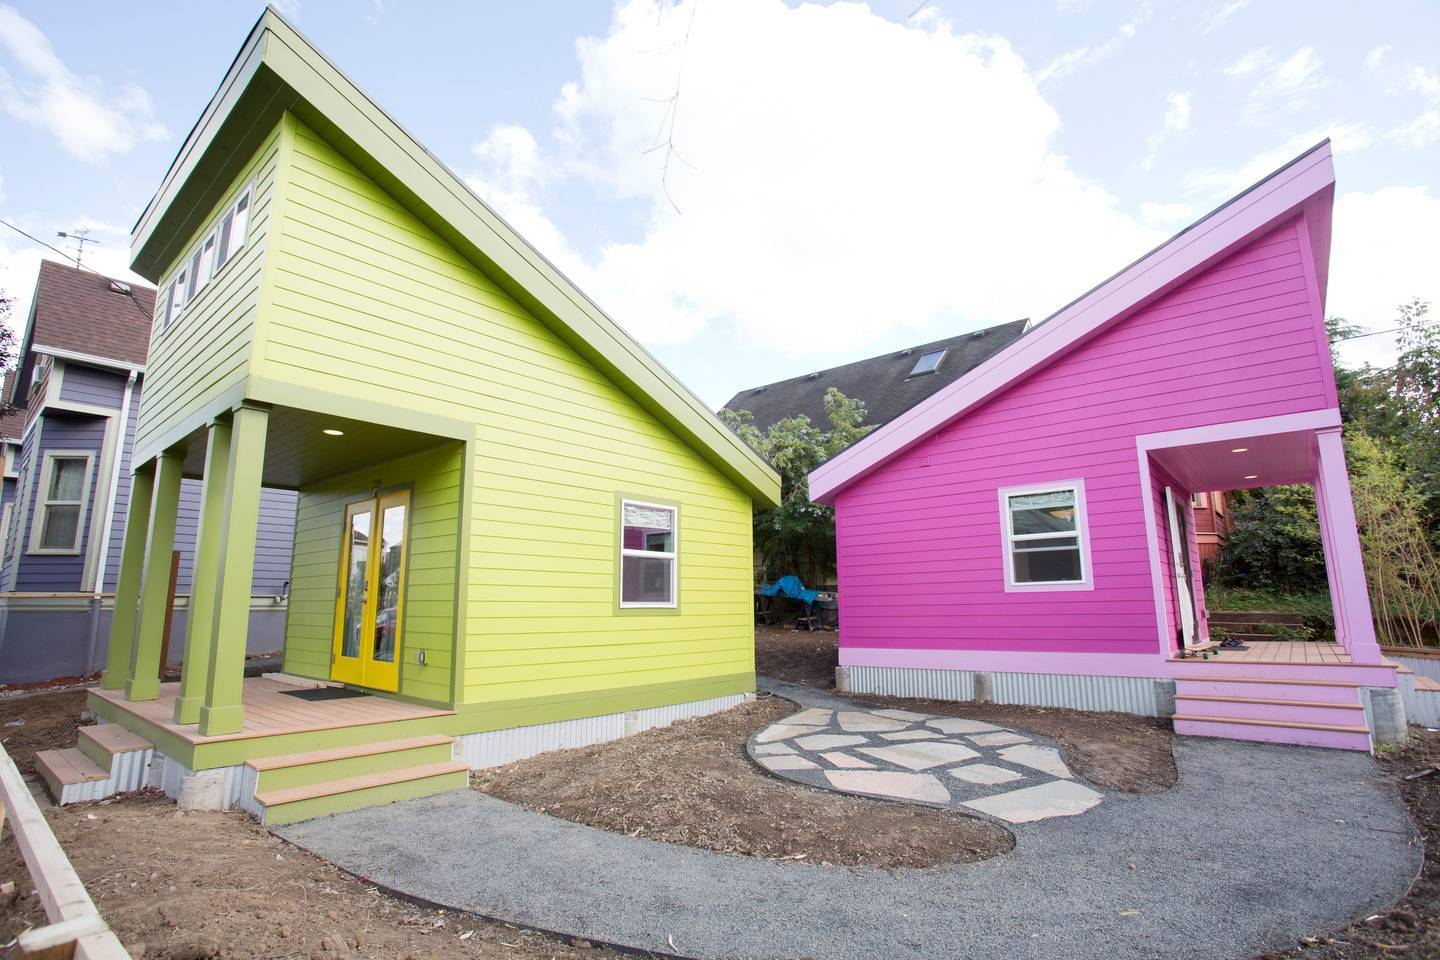 20 Tiny Houses In Oregon You Can Rent On Airbnb In 2020 Dream Big Live Tiny Co